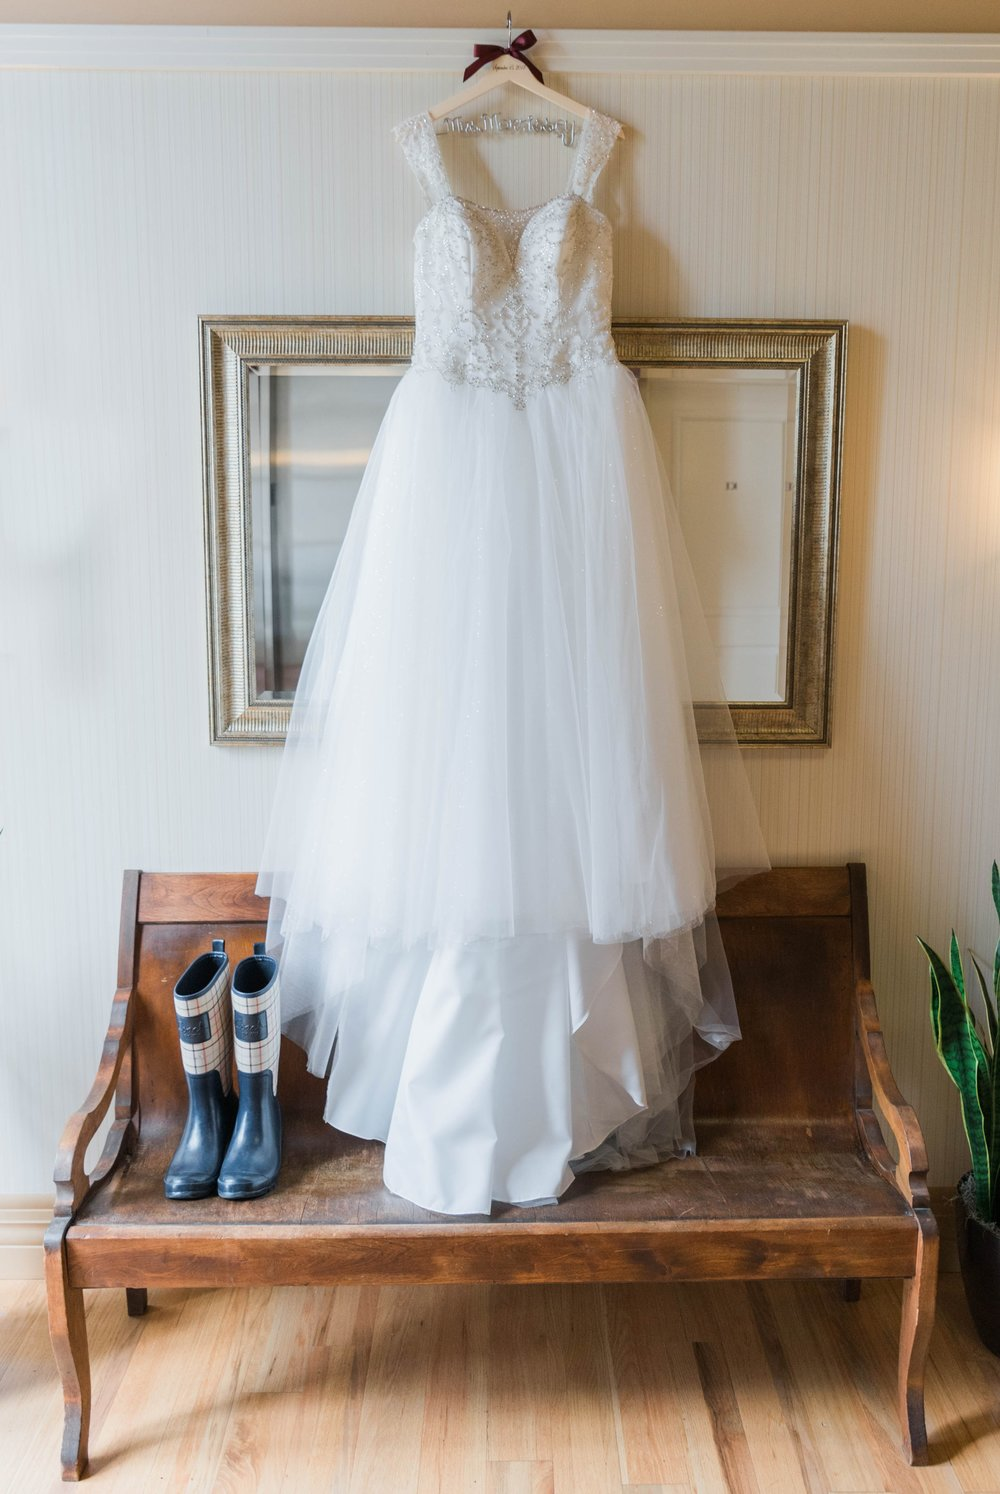 LynchburgVirginia_Virginiaweddingphotographer_michaelkim 2.jpg